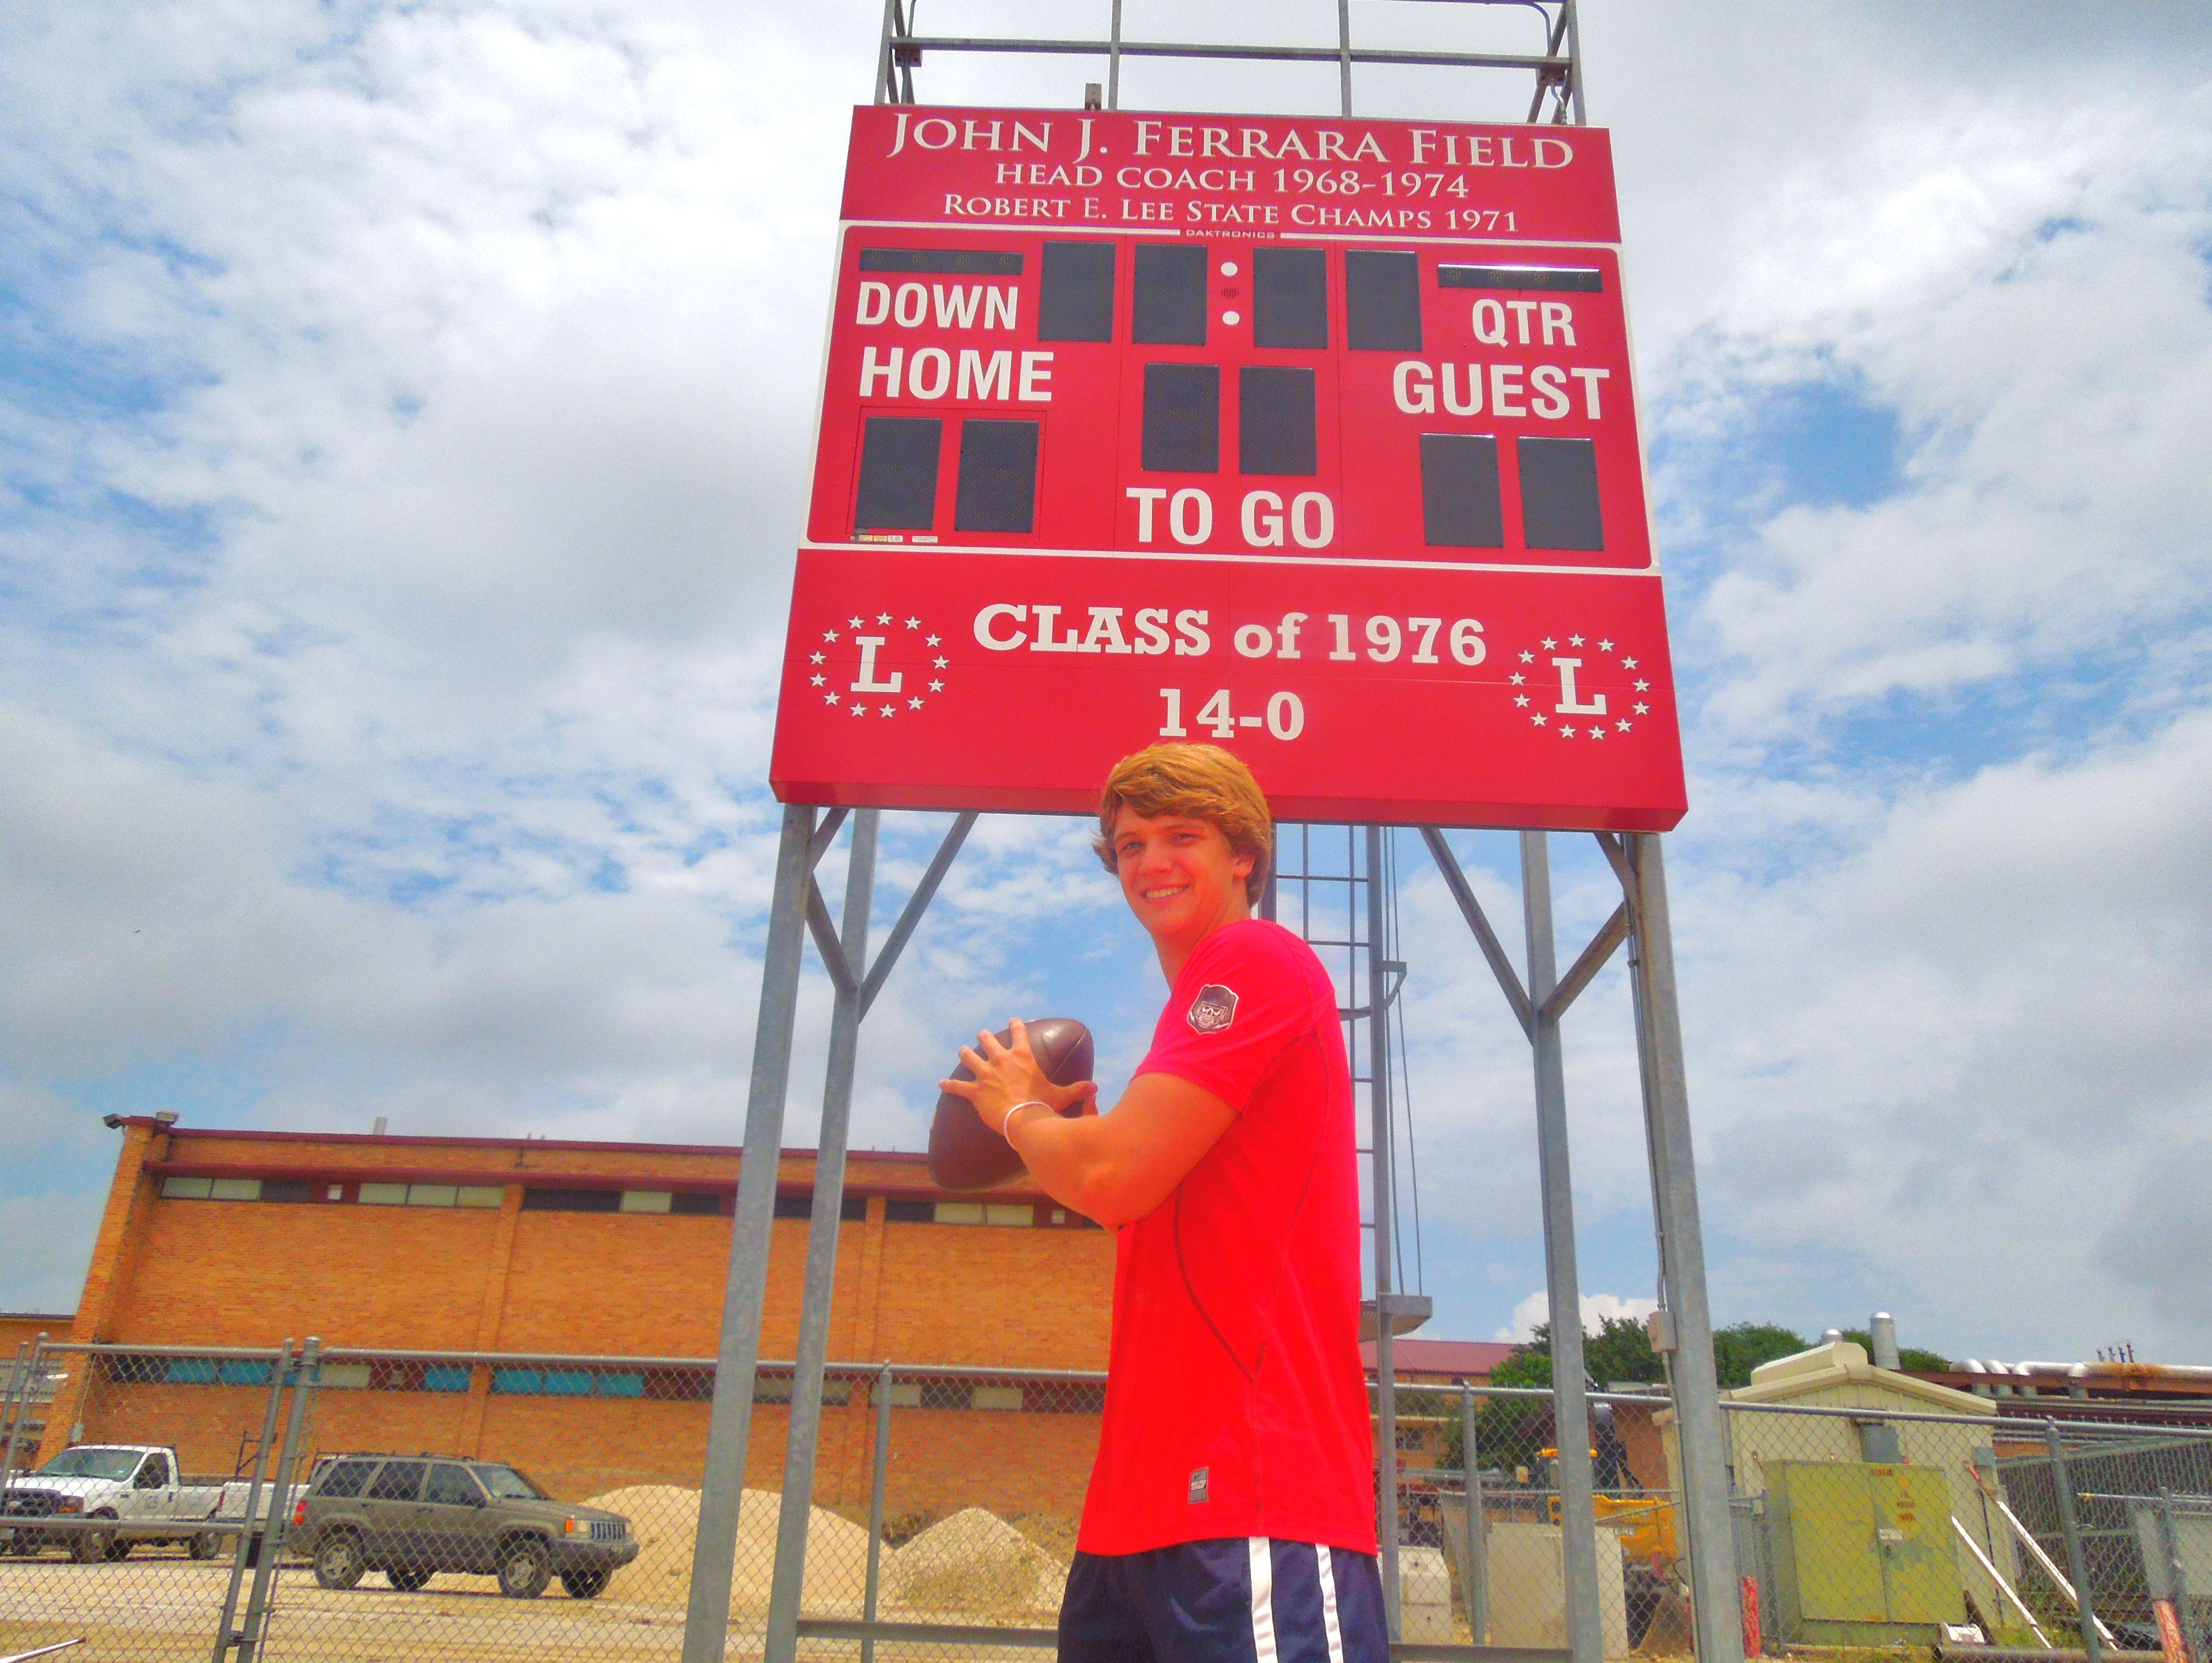 Lee quarterback Kyle Fuller, standing in front of the scoreboard at Ferrara Field, has been one of the most prolific passers in the area the past two seasons.